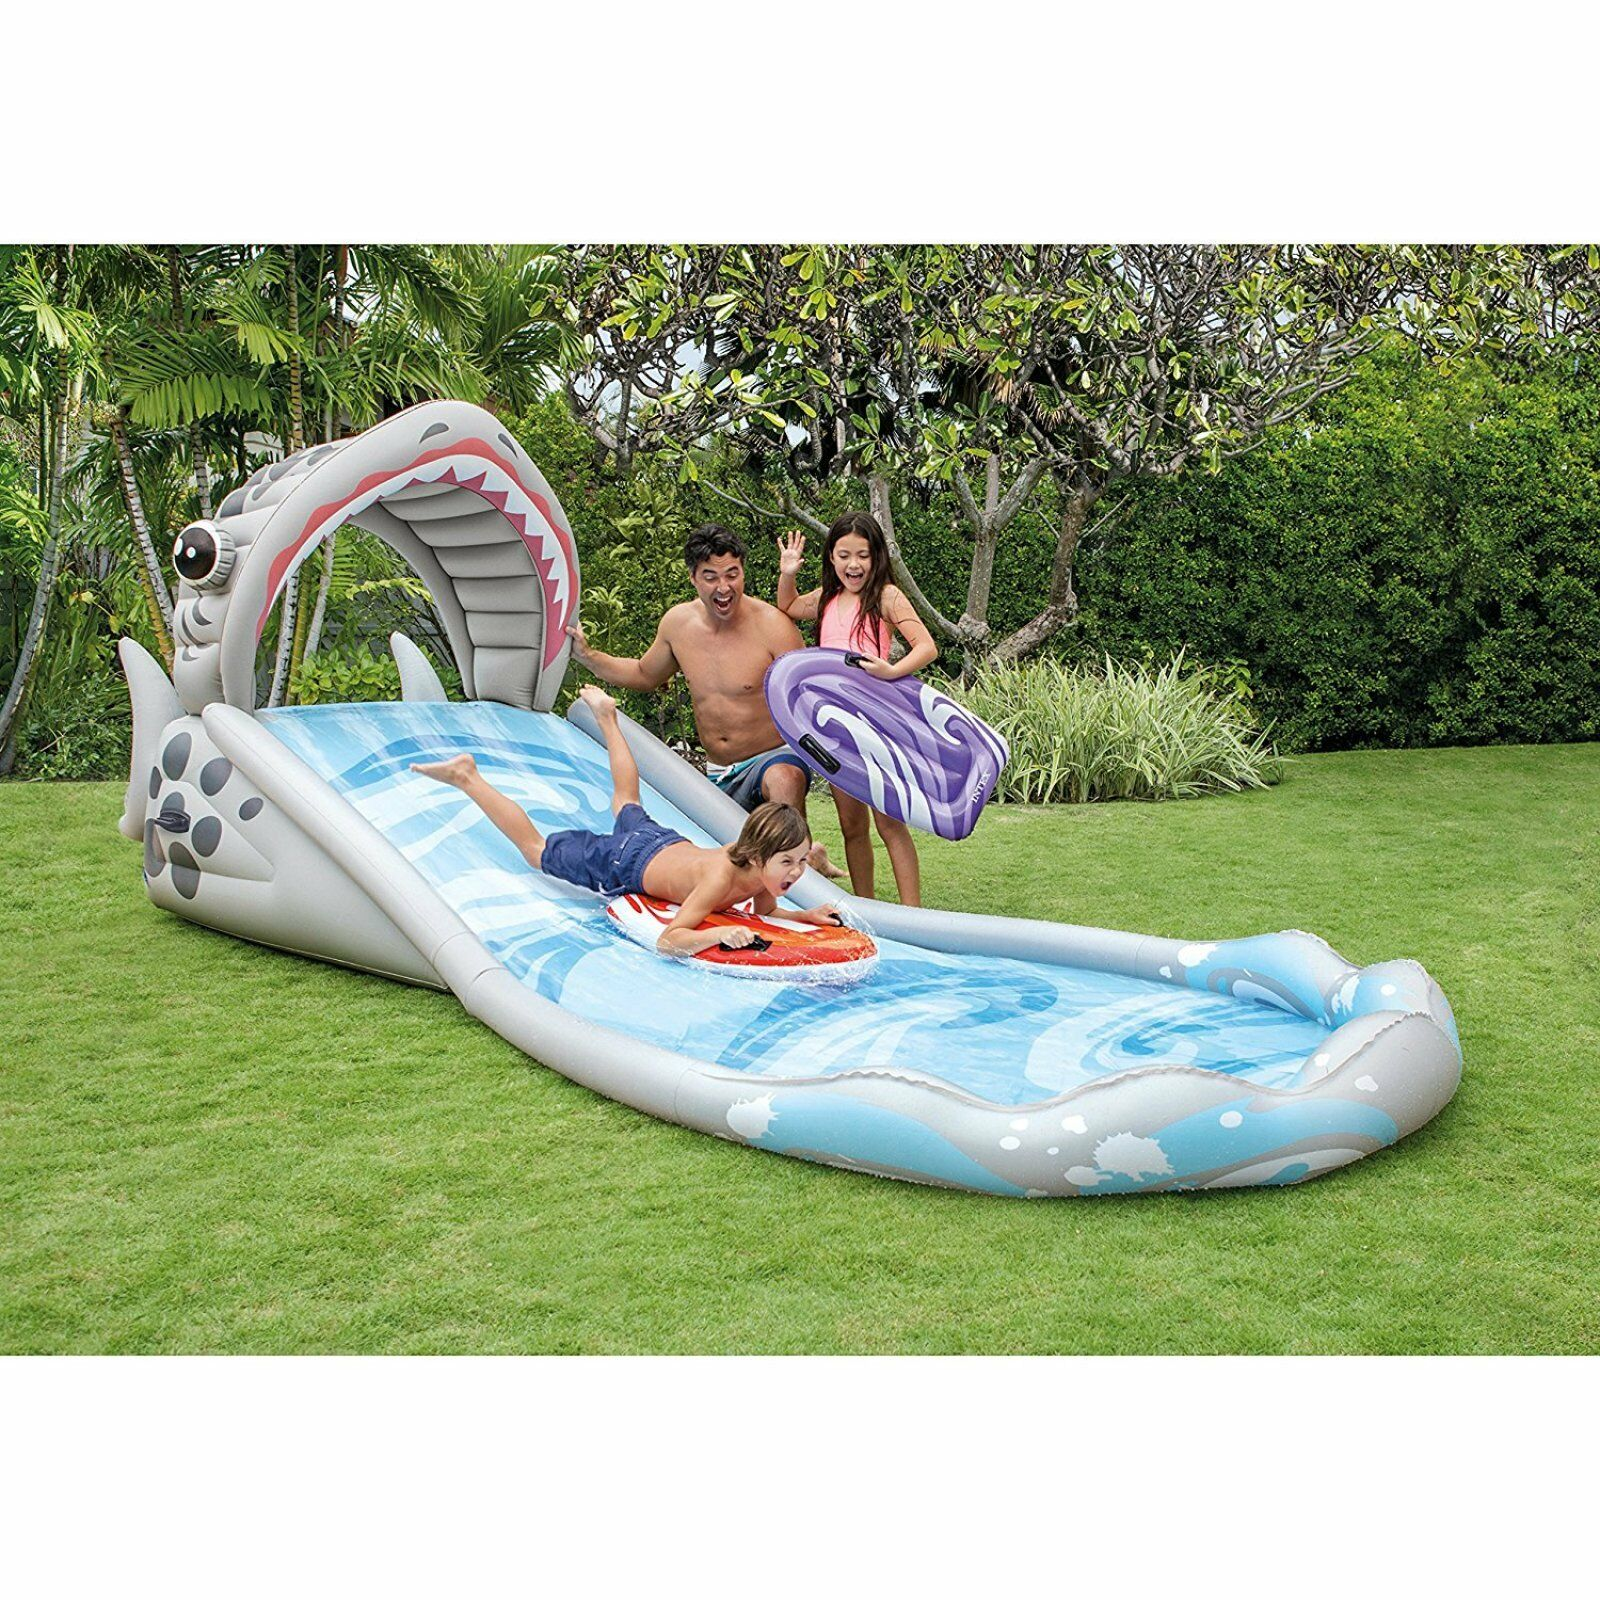 Outdoor Water Slide Inflatable Pool Toys Shark Design Pool ...